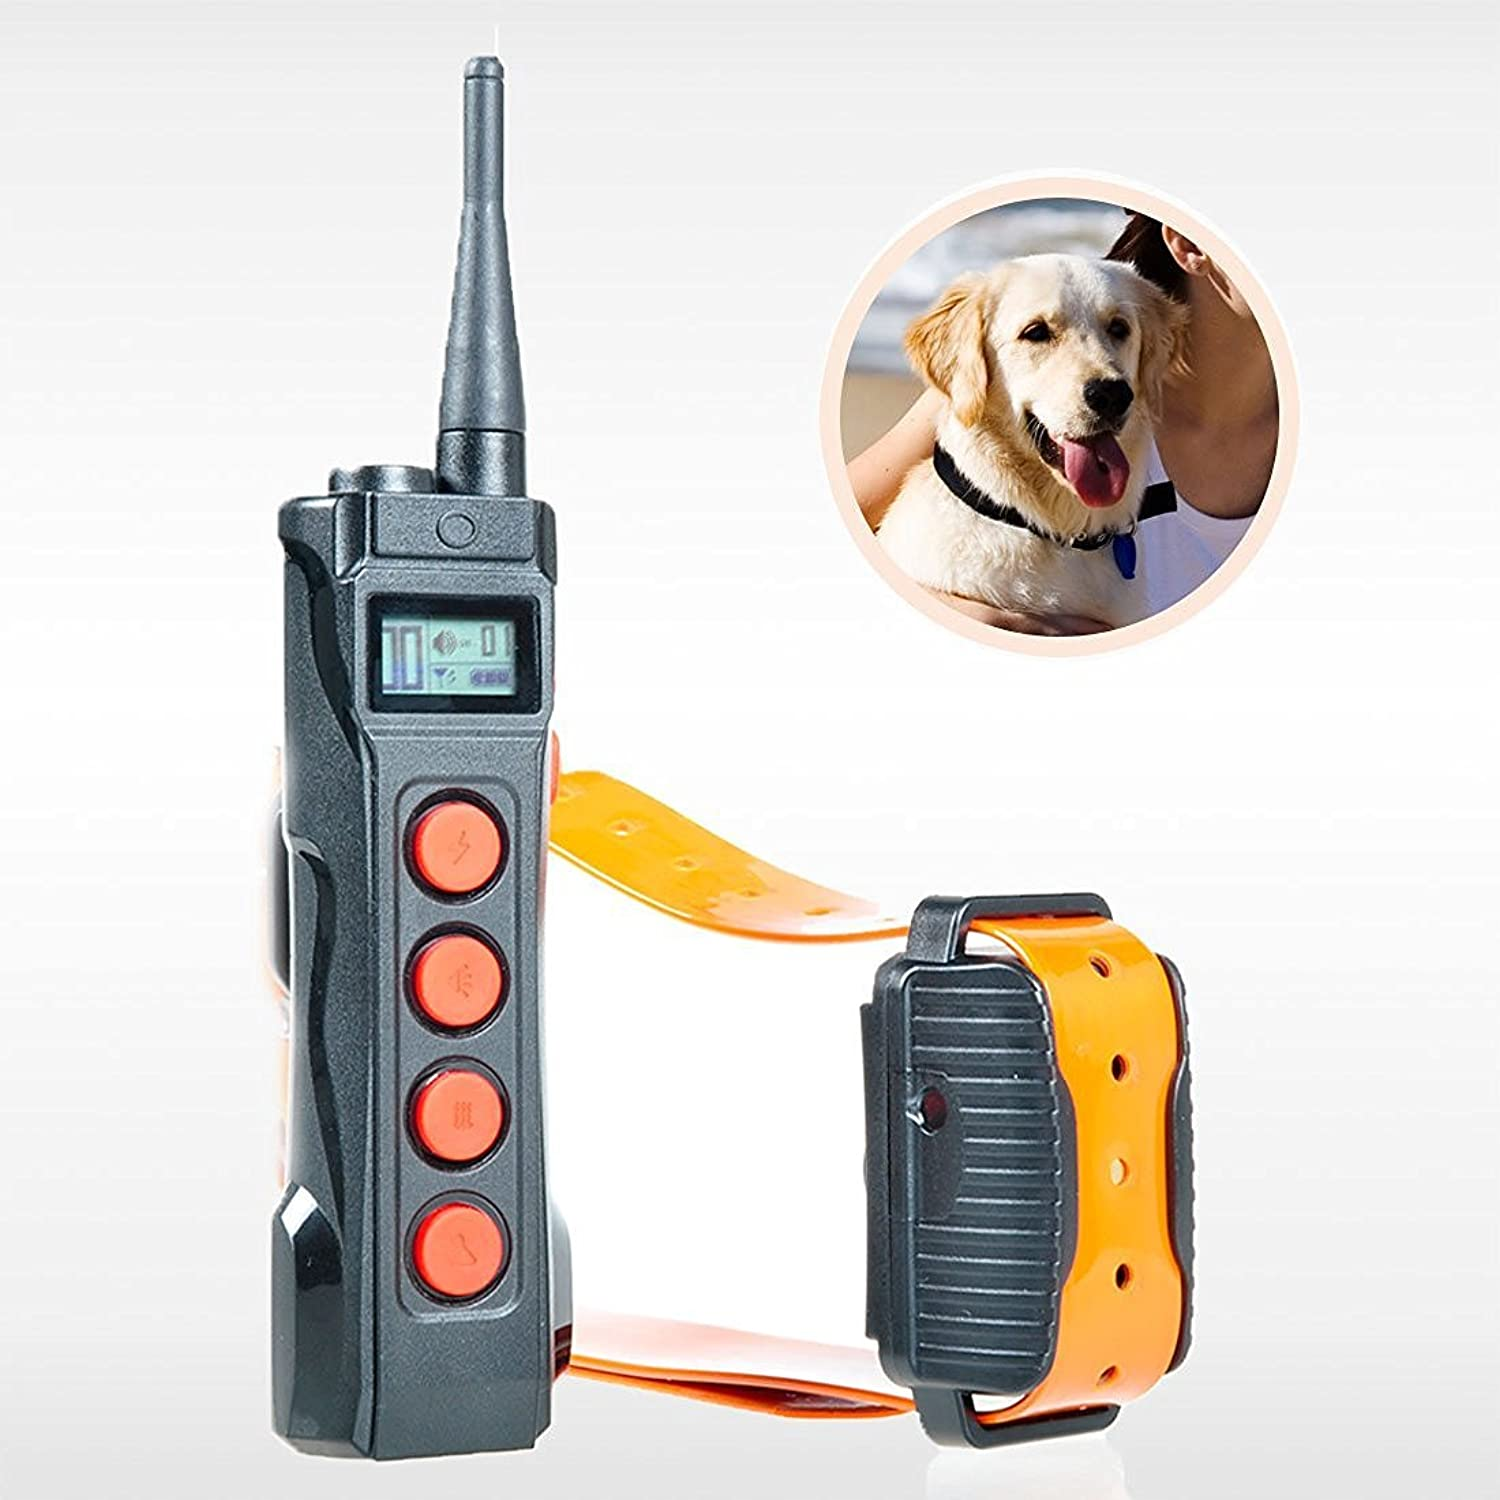 Aetertek 218C Shock Control Pet Dog Training Collar Waterproof Rechargeable LCD Remote with 10 Level of Shock + beep+Vibration 600 Yards Range (for 1 Dog)